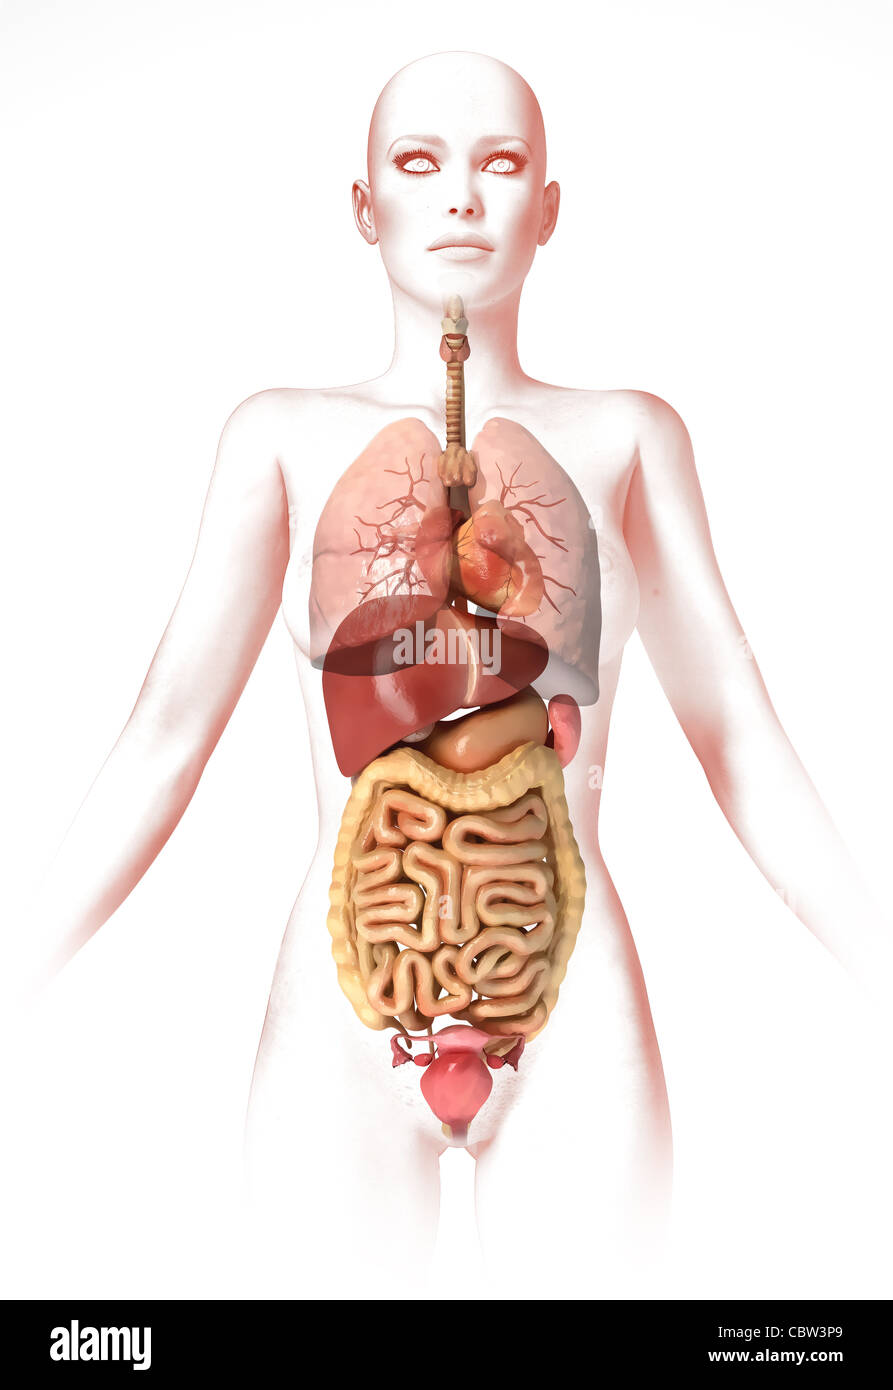 Diagram Human Body Stock Photos Diagram Human Body Stock